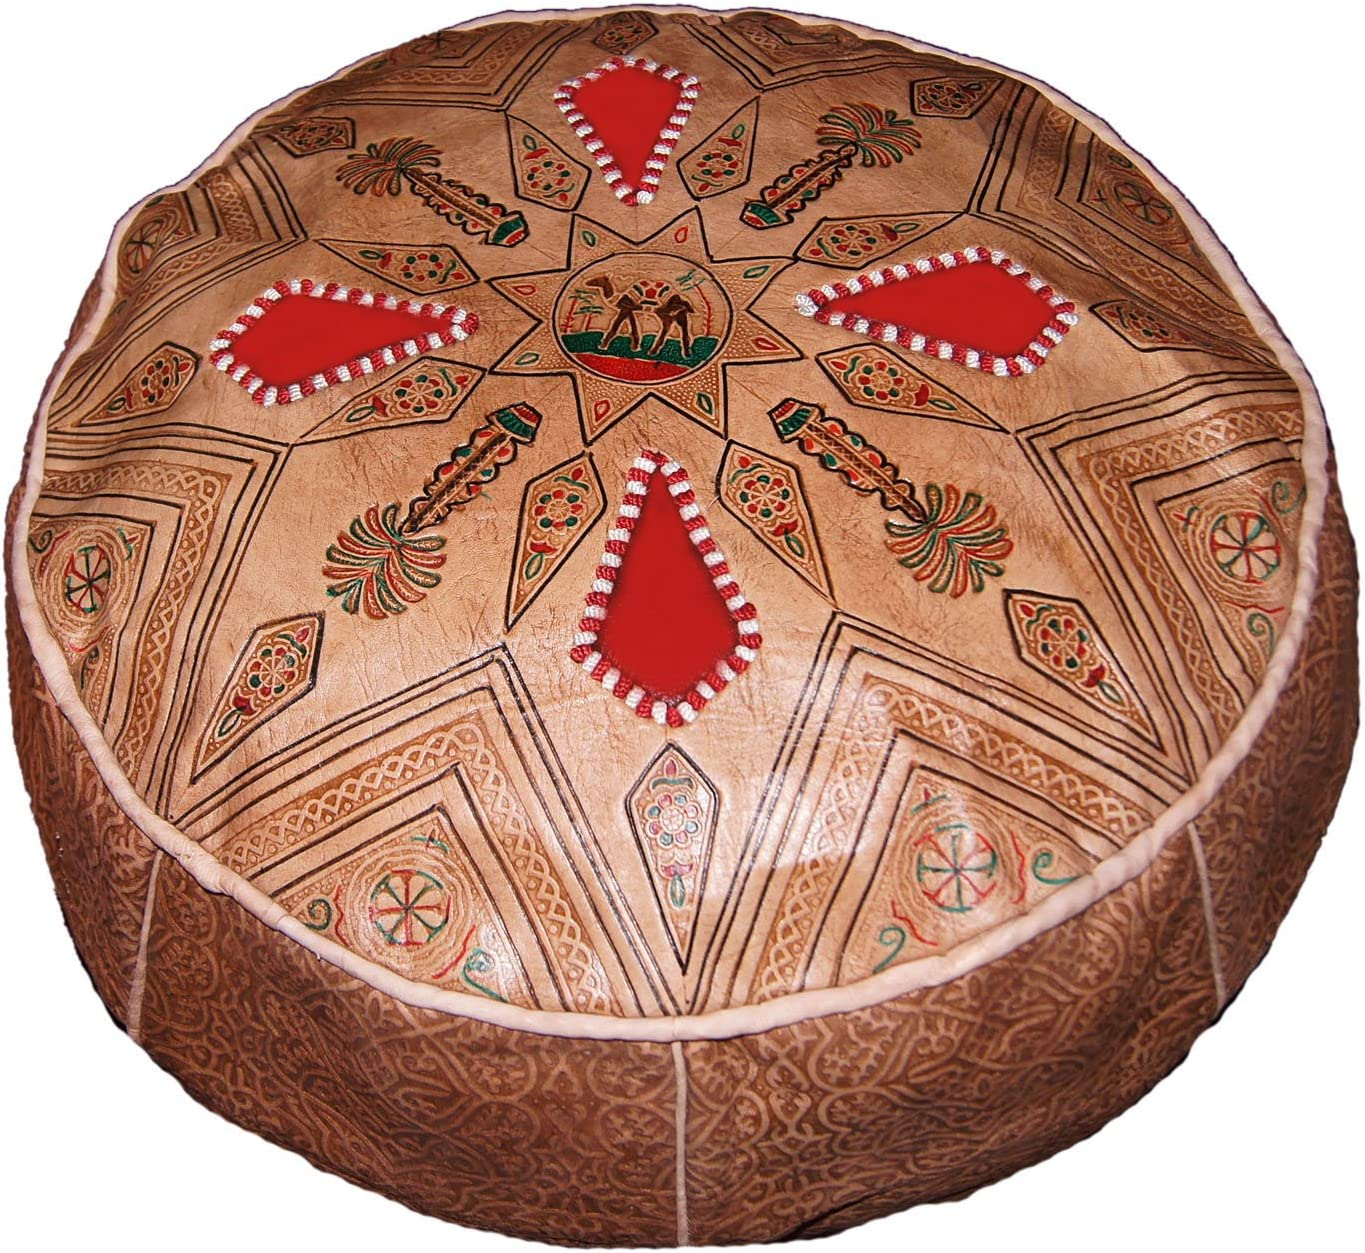 Moroccan Poofs Hand Made 100 Leather Ottoman Comfortable Round Design Foot Stool - the best ottoman chair for the money